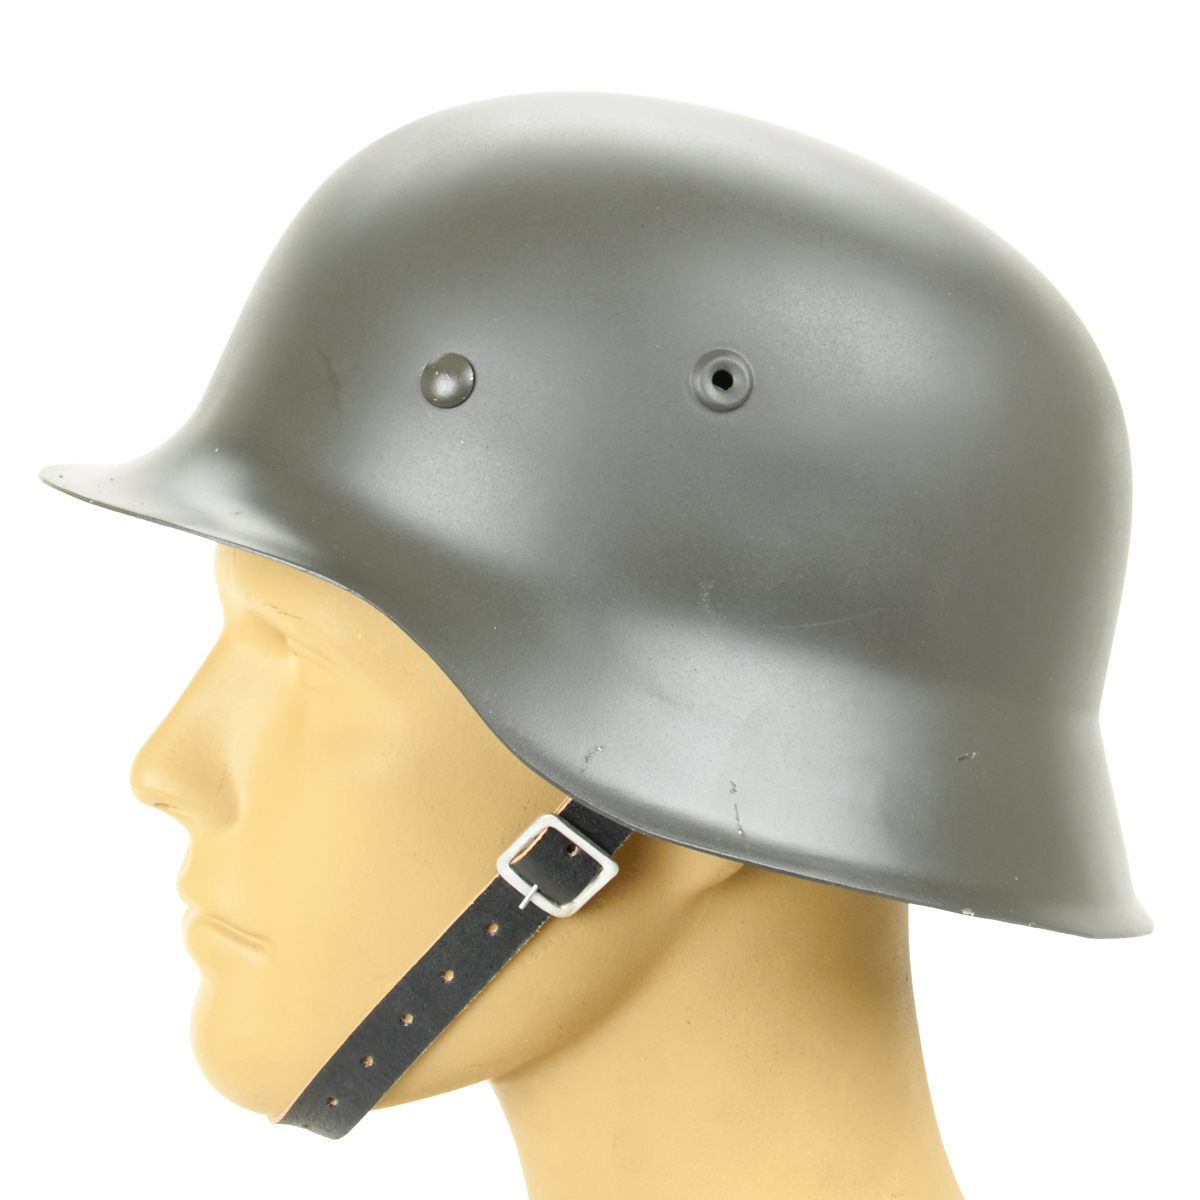 Strahlhelm Details About German Wwii M42 Steel Helmet Stahlhelm 42 Ww2 M1942